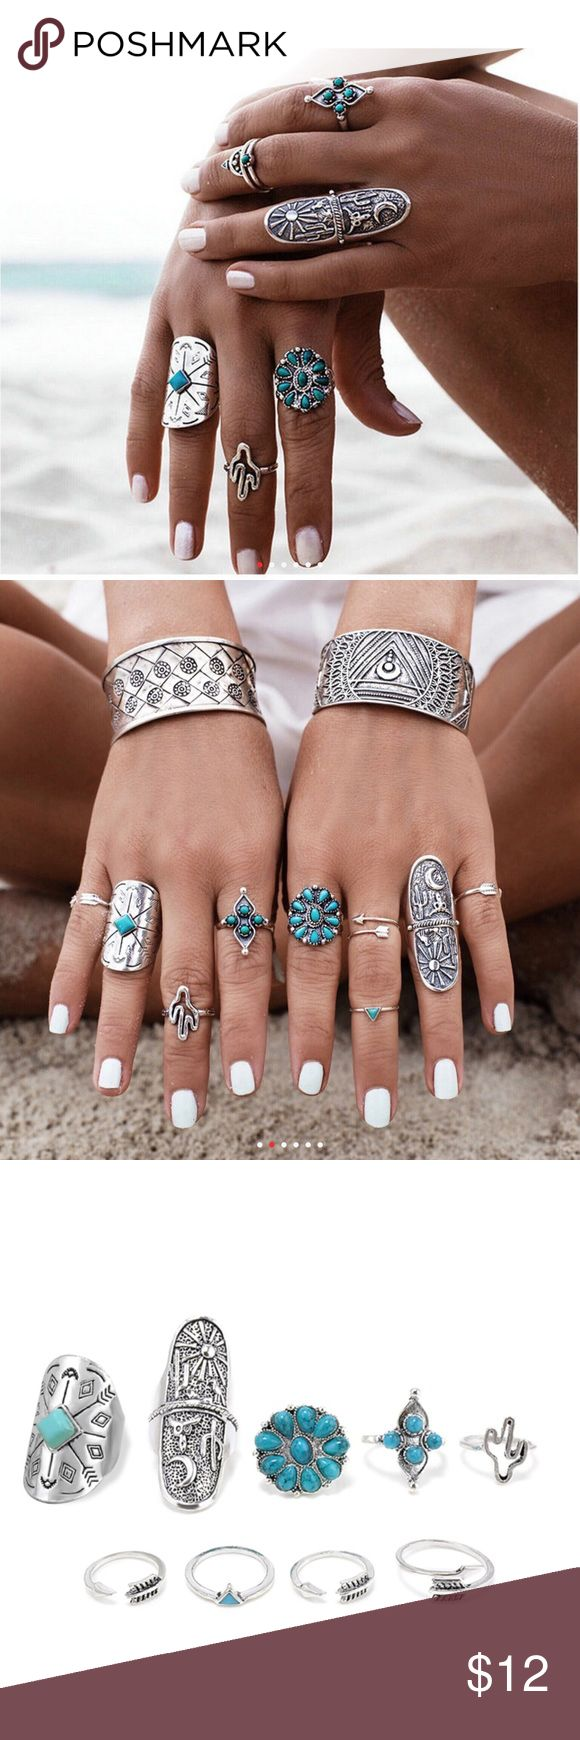 💎4 LEFT💎 9 Pc Bohemian Silver Turquoise Ring Set 🔻4 SETS LEFT🔻 9 PCS  BRAND NEW  All items arrive adorably gift wrapped. 🎁  Simply bundle your items & save 💲💲💲  WHILE SUPPLIES LAST  Thanks for your support & enjoy! 💕  TAGS ONLY: NOT: Nasty Gal Victoria's Secret Ulta Sephora MAC H&M Lululemon Francesca's kate spade J. Crew Kardashian Free People Juicy Stella & Dot Tory Burch Smashbox Anthropology Urban Outfitters follow game Kylie contour matte baked palette classy trending cheap…